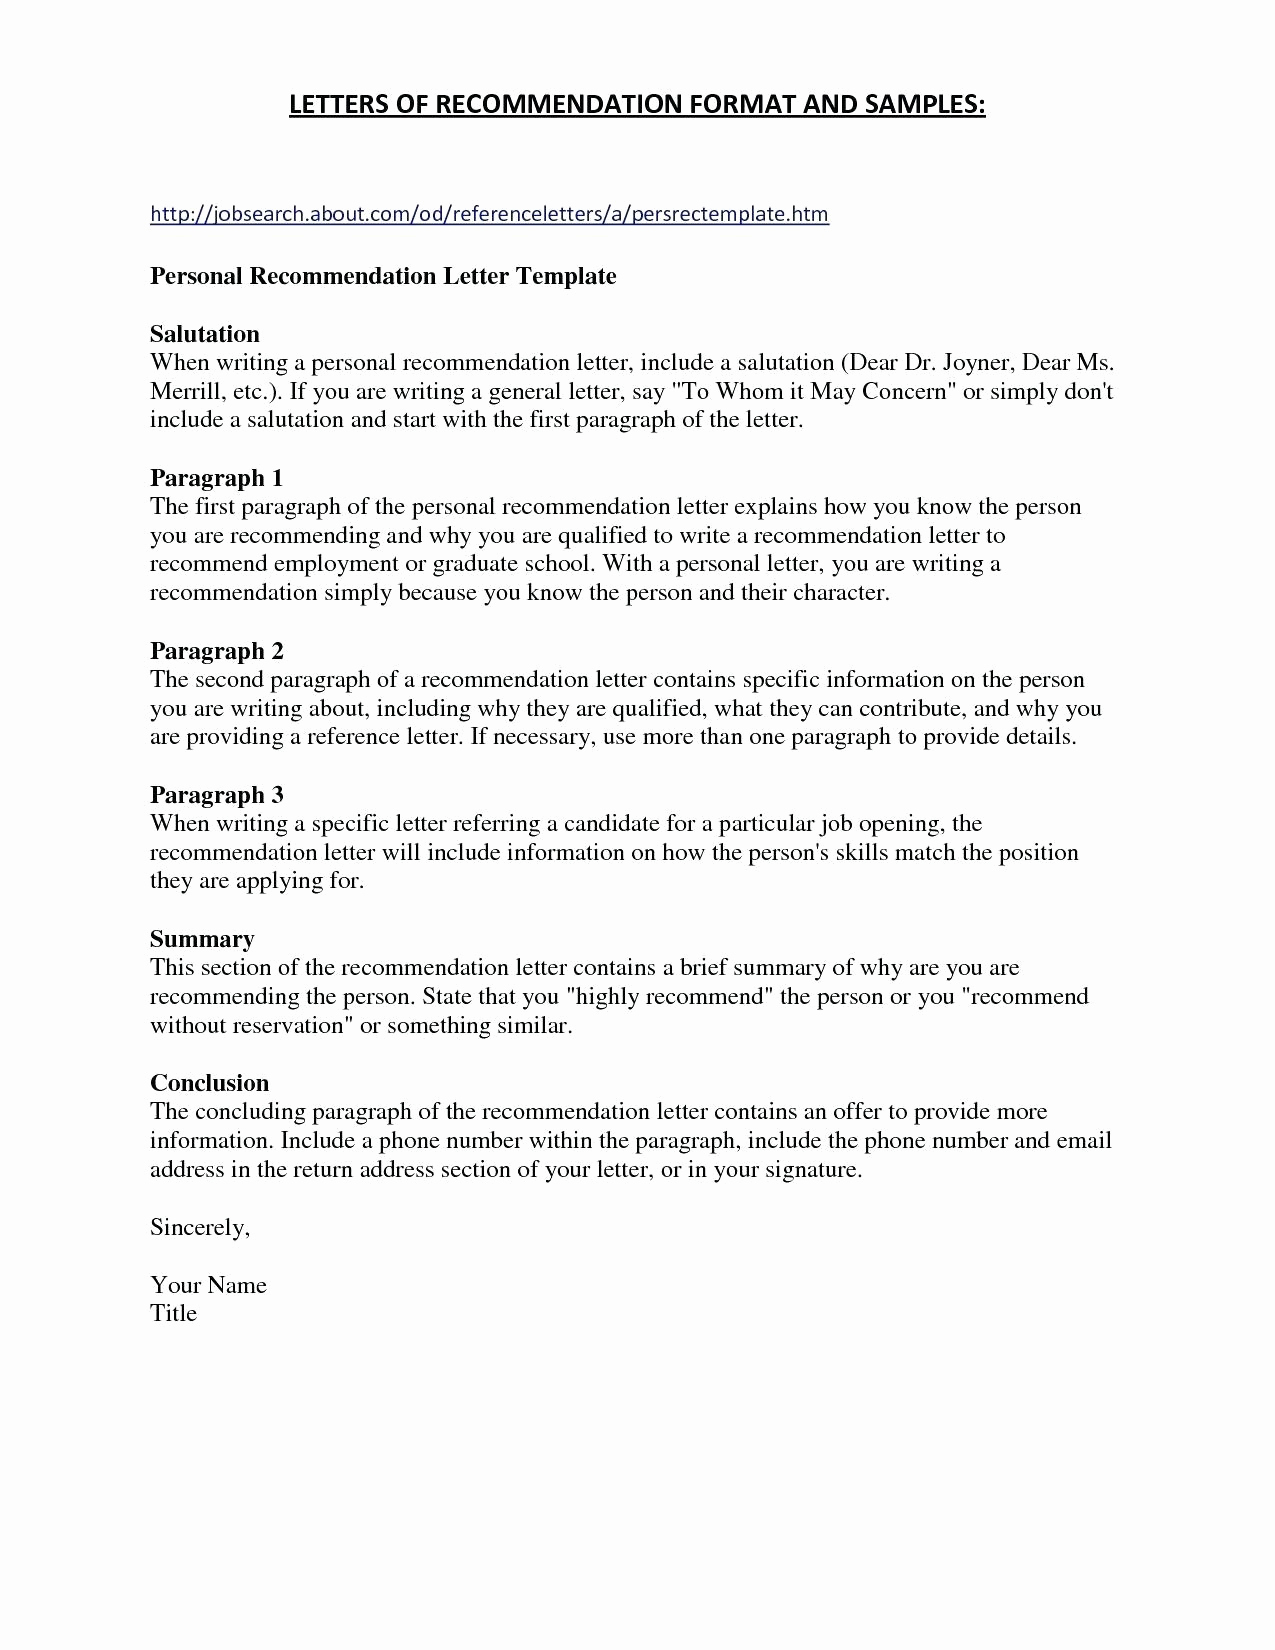 Letter Of Recommendation for Yourself Template - Sample Personalcharacter Reference Letter Created Using Ms Word